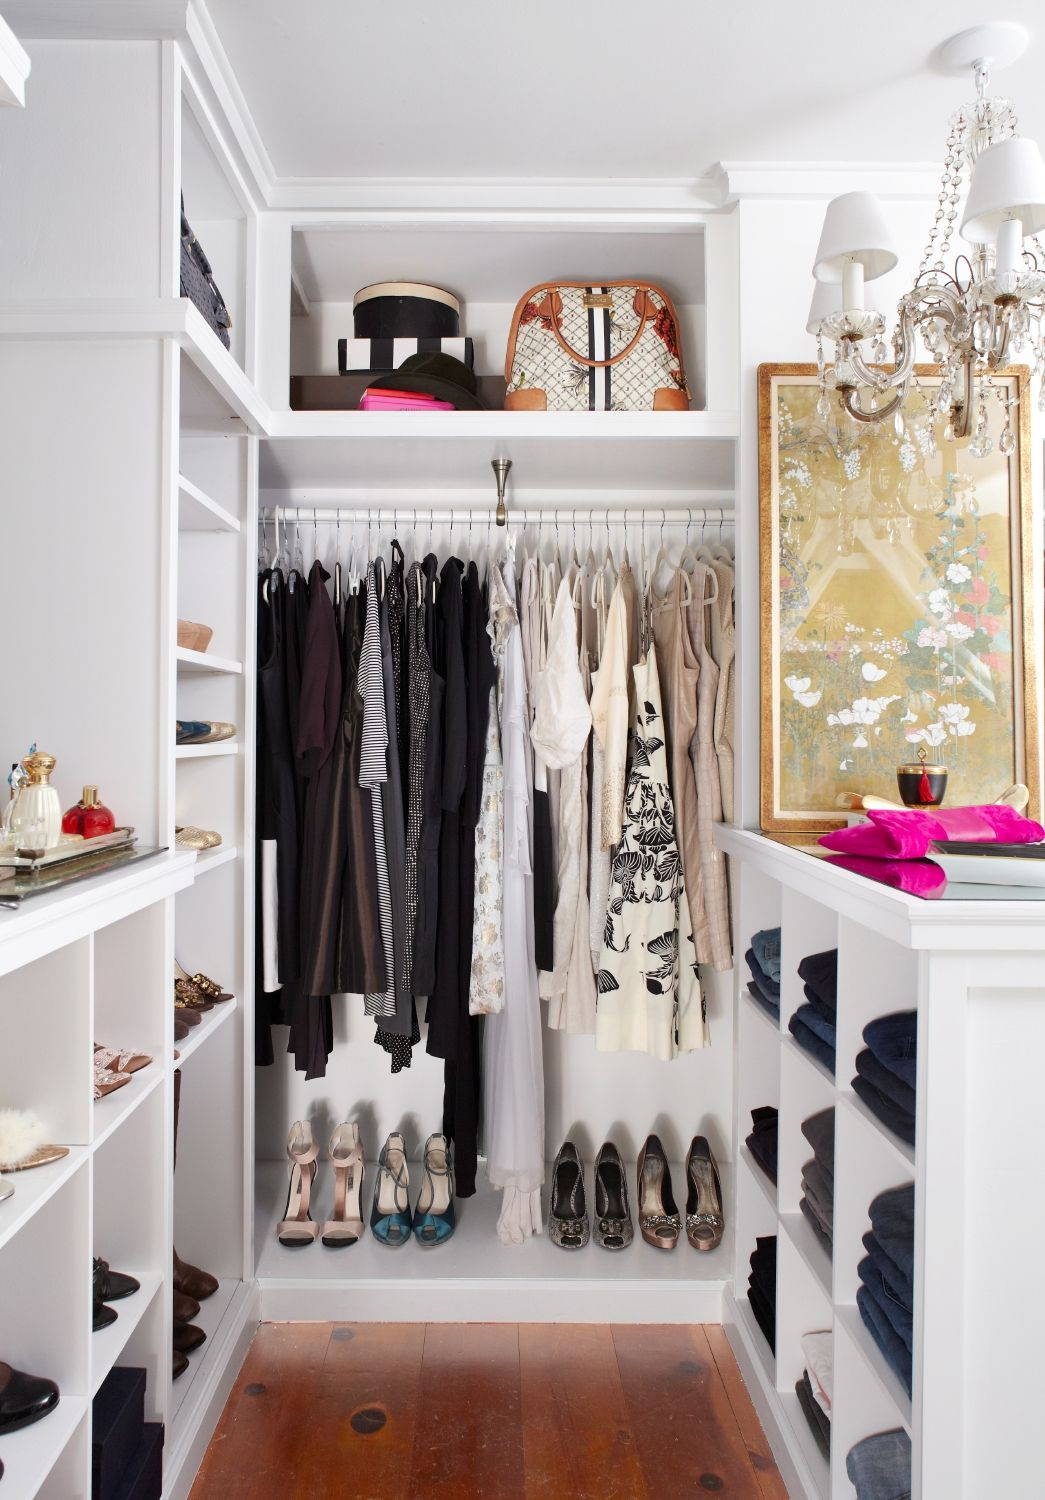 Walk In Closet Design Ideas Part - 29: Small Walk In Closet Designs With Shelves Raise Hanging Rack And Add  Shelves/box Slot Under Instead, Ceiling High Shelf Become Another Hanging  Rack With Box ...